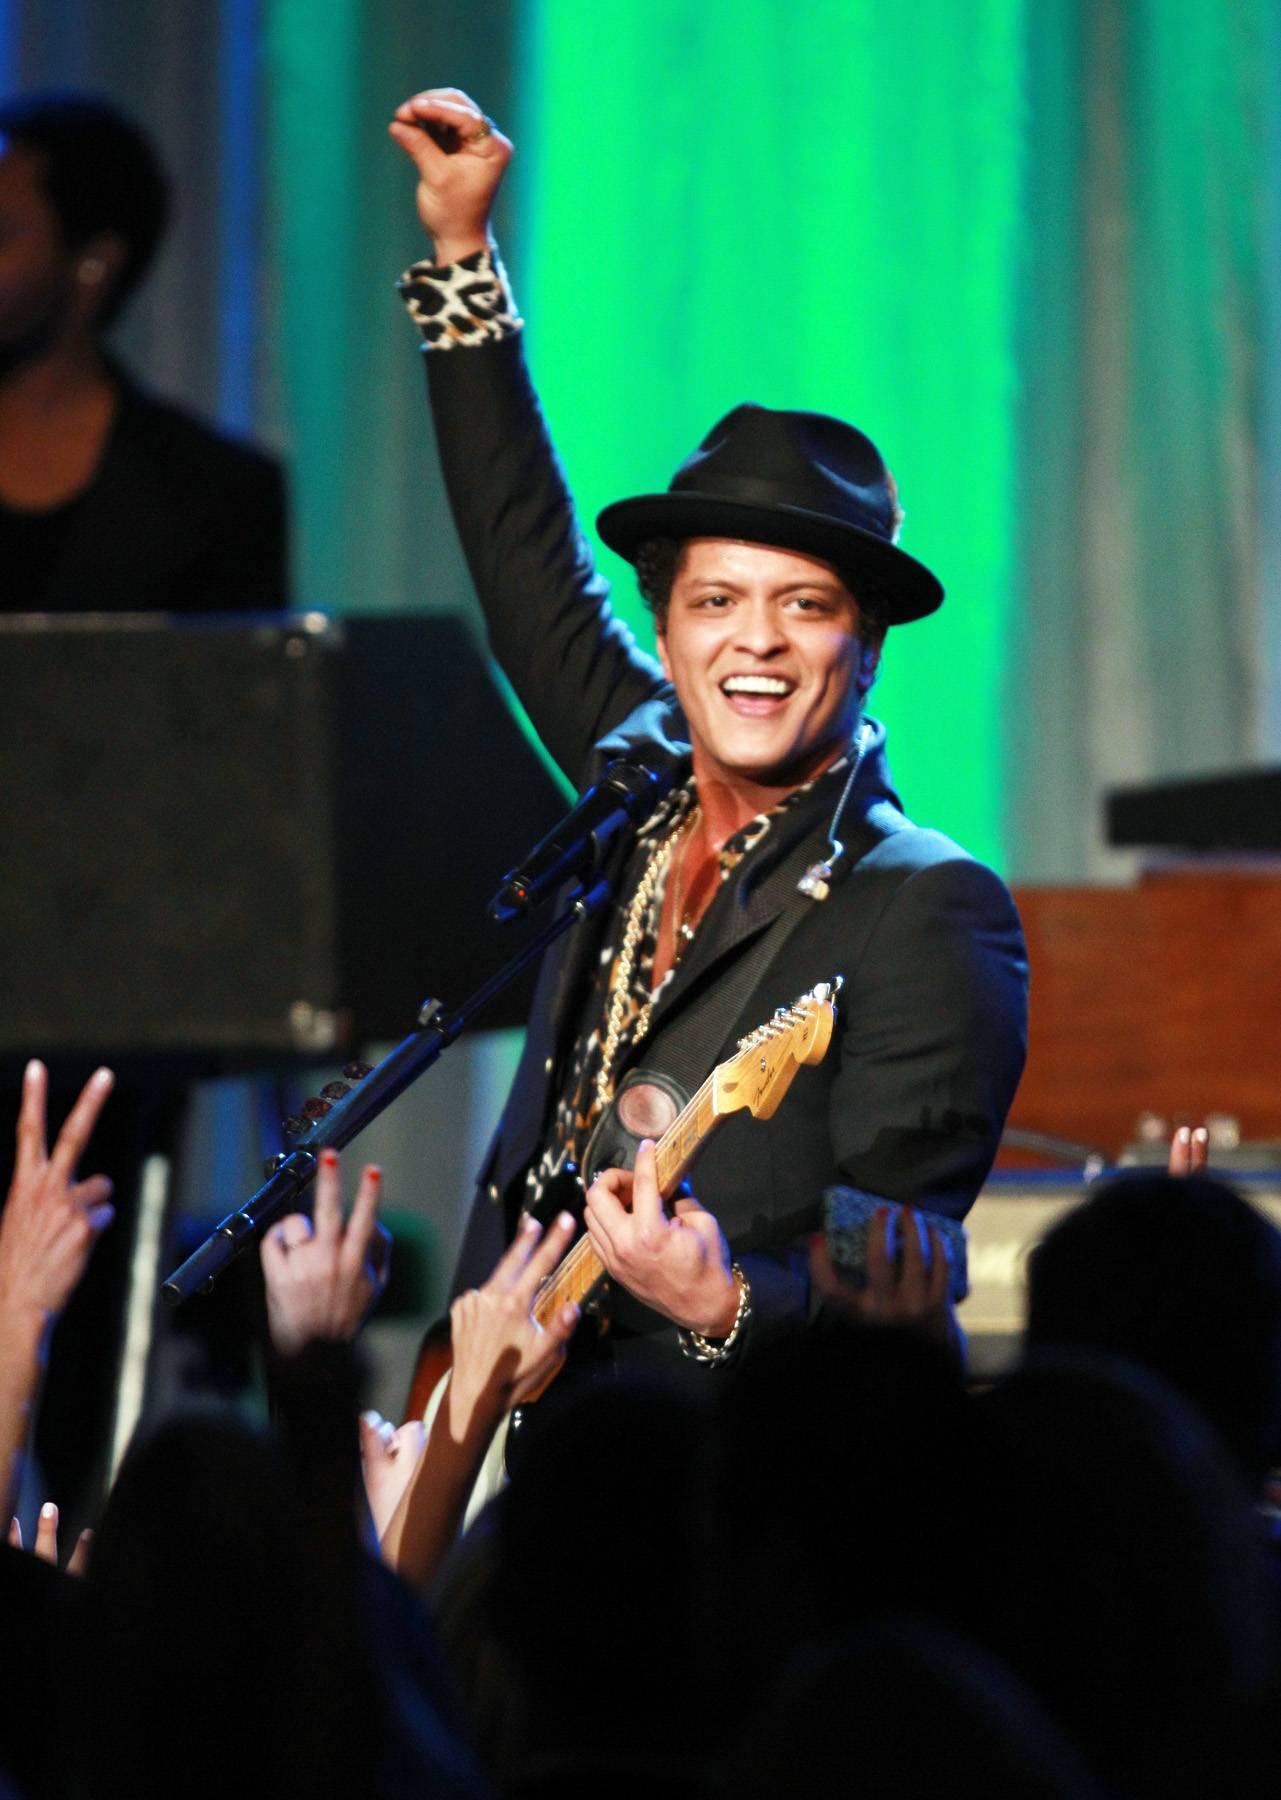 Best R&B/Soul Male Artist: Bruno Mars - Bruno Mars continued his musical winning streak with an eclectic mix of retro-influenced R&B, pop and dance hits. (Photo: Joe Scarnici/Getty Images for EIF)